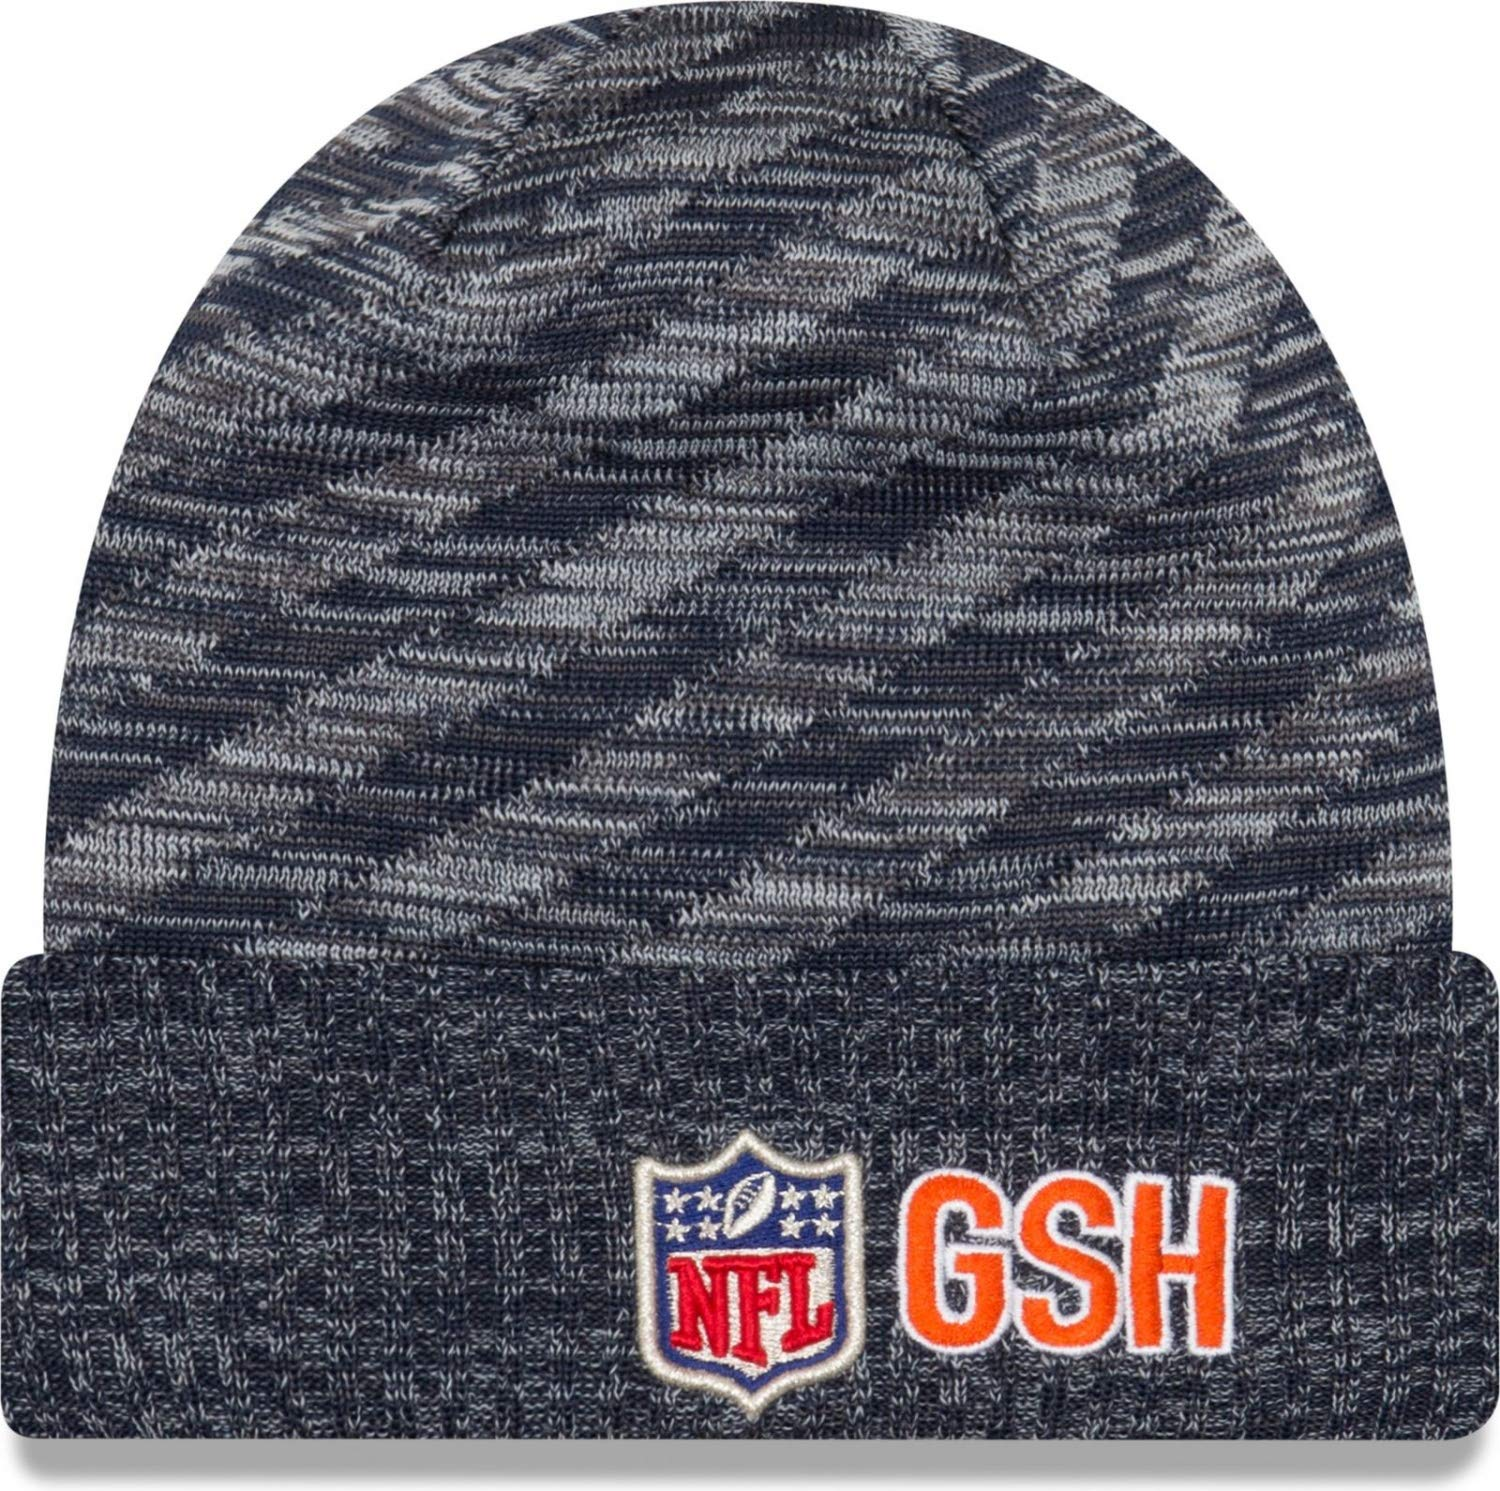 New Era Chicago Bears HISTORIC 2018 Sideline Touchdown Knit NFL Beanie a89cbd52e